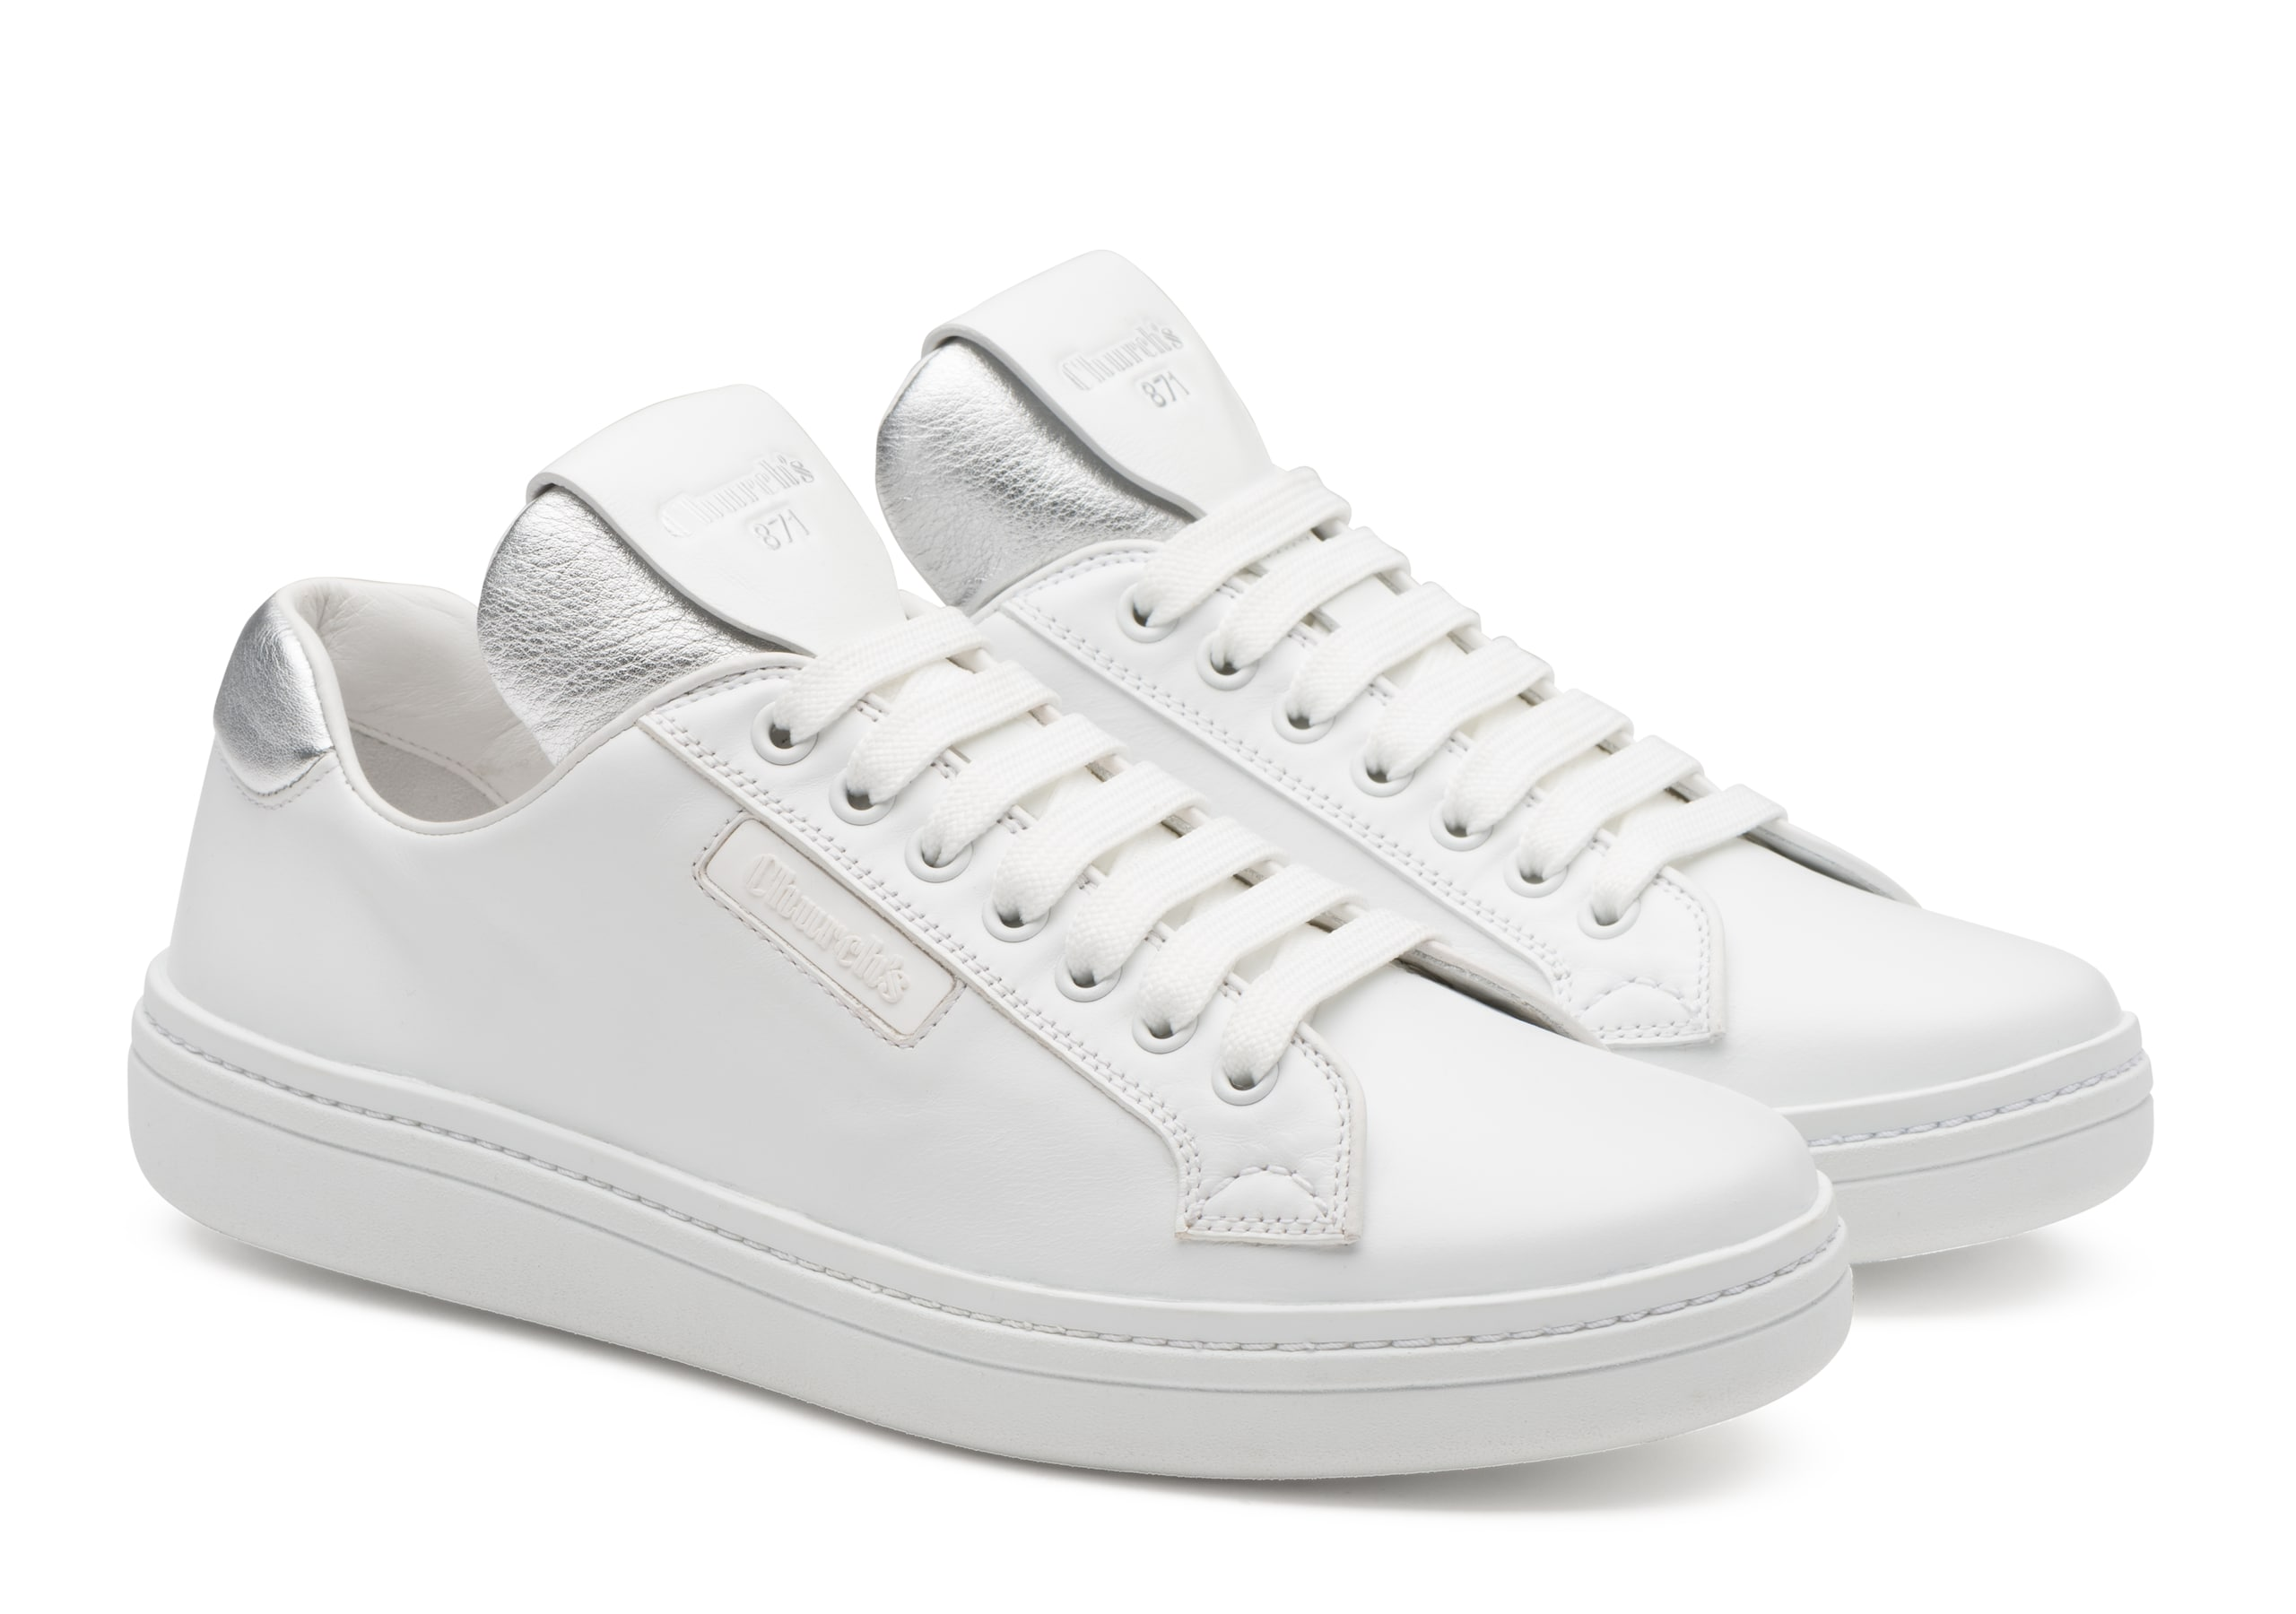 Ch871 Church's Sport Calf Leather Classic Sneaker White